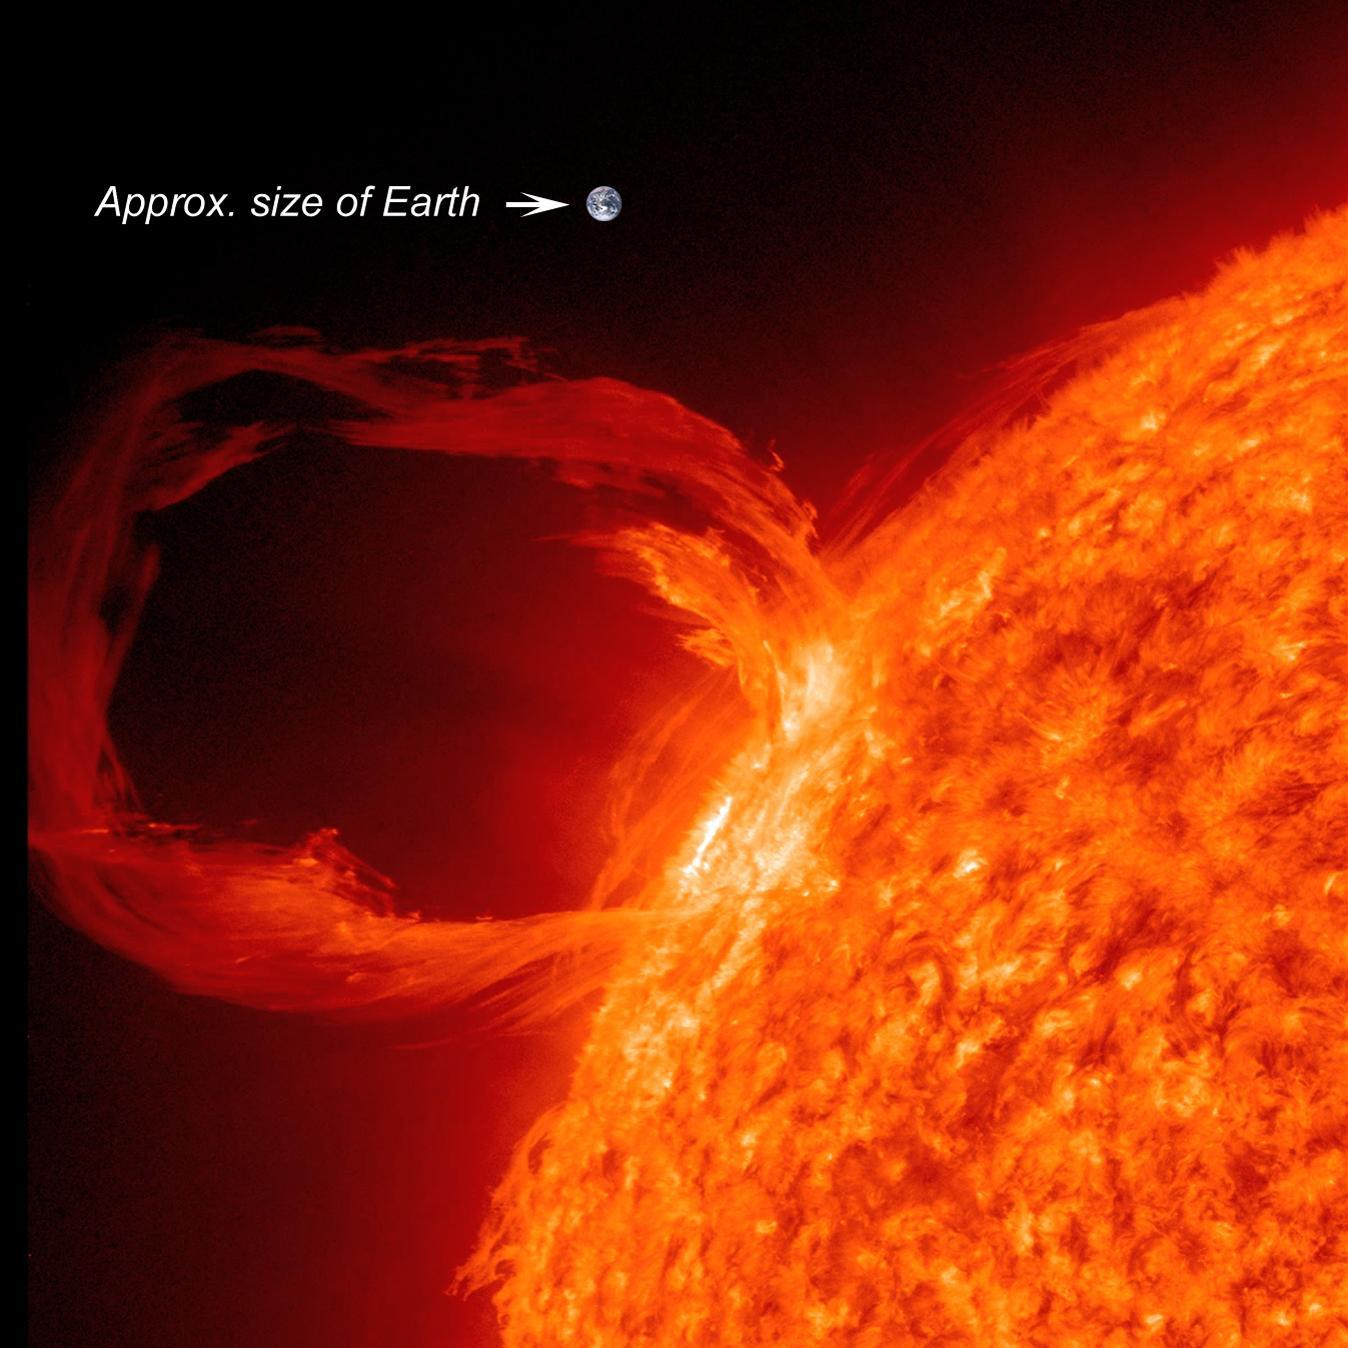 The Sun and a Coronal Mass Ejection compared with the size of the Earth.